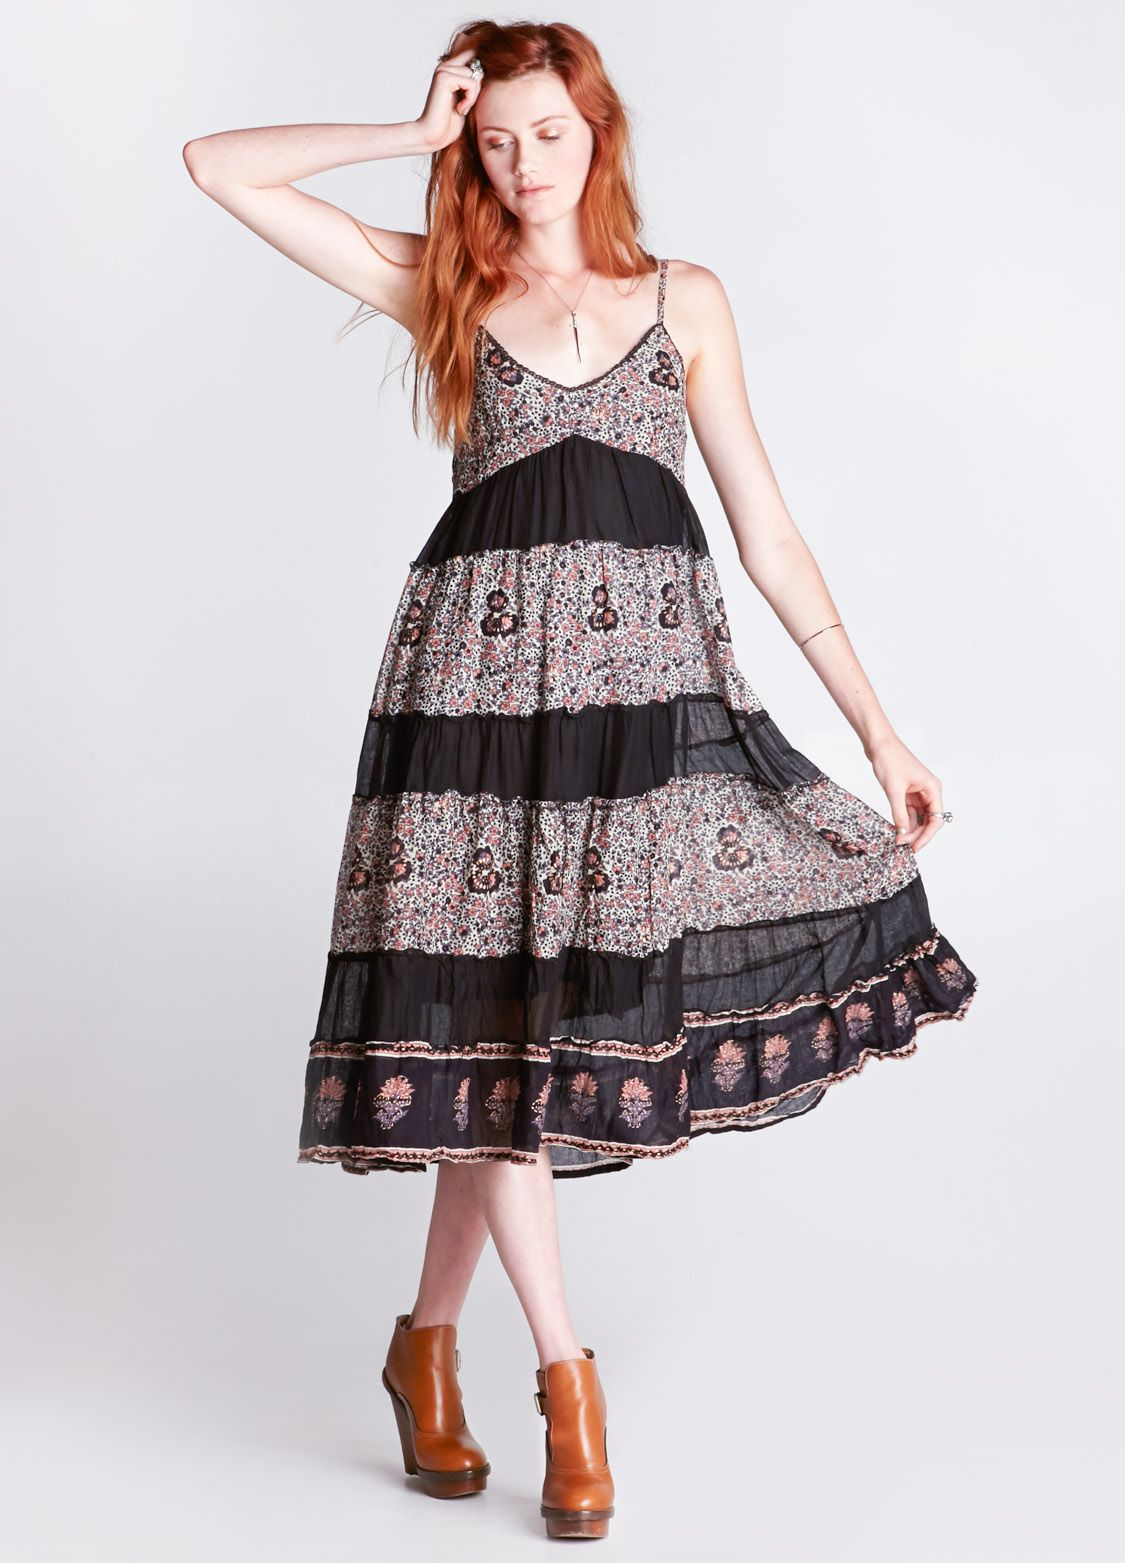 Floral and black striped bohostyle midi dress featuring lace trim